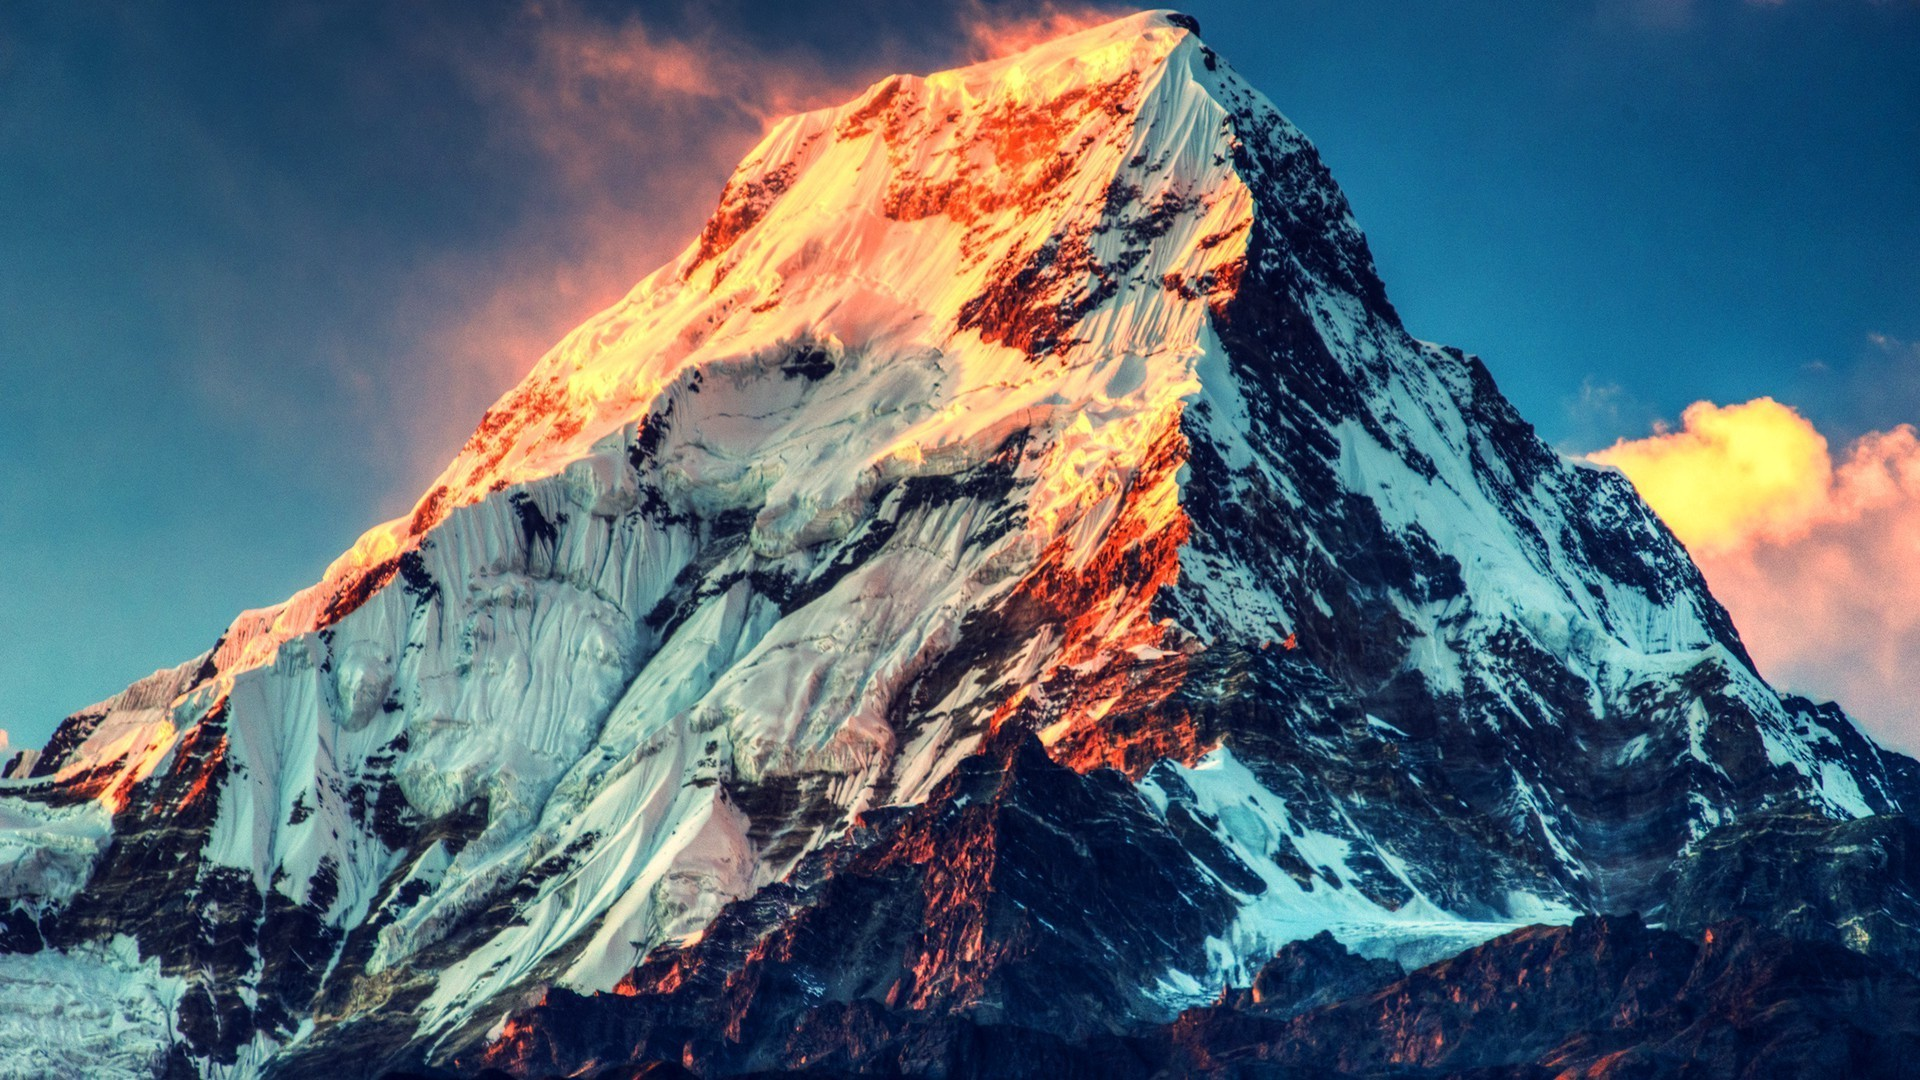 Res: 1920x1080, Climbing Everest Wallpapers High Quality Resolution For Iphone Wallpaper HD